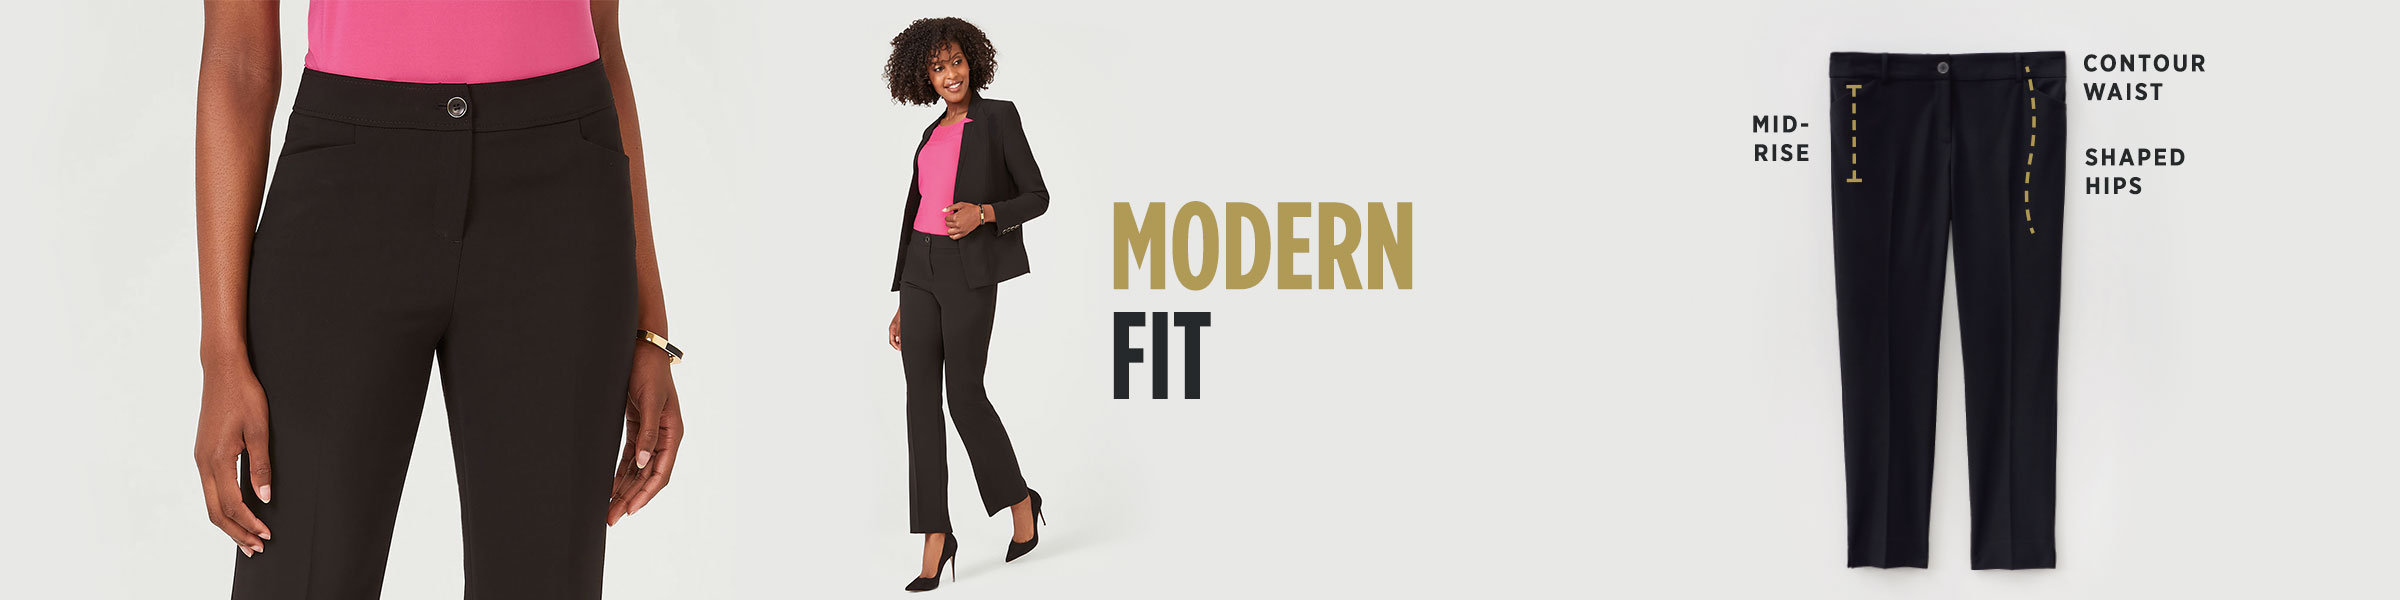 Laura - Clothing - Pants - Modern Fit